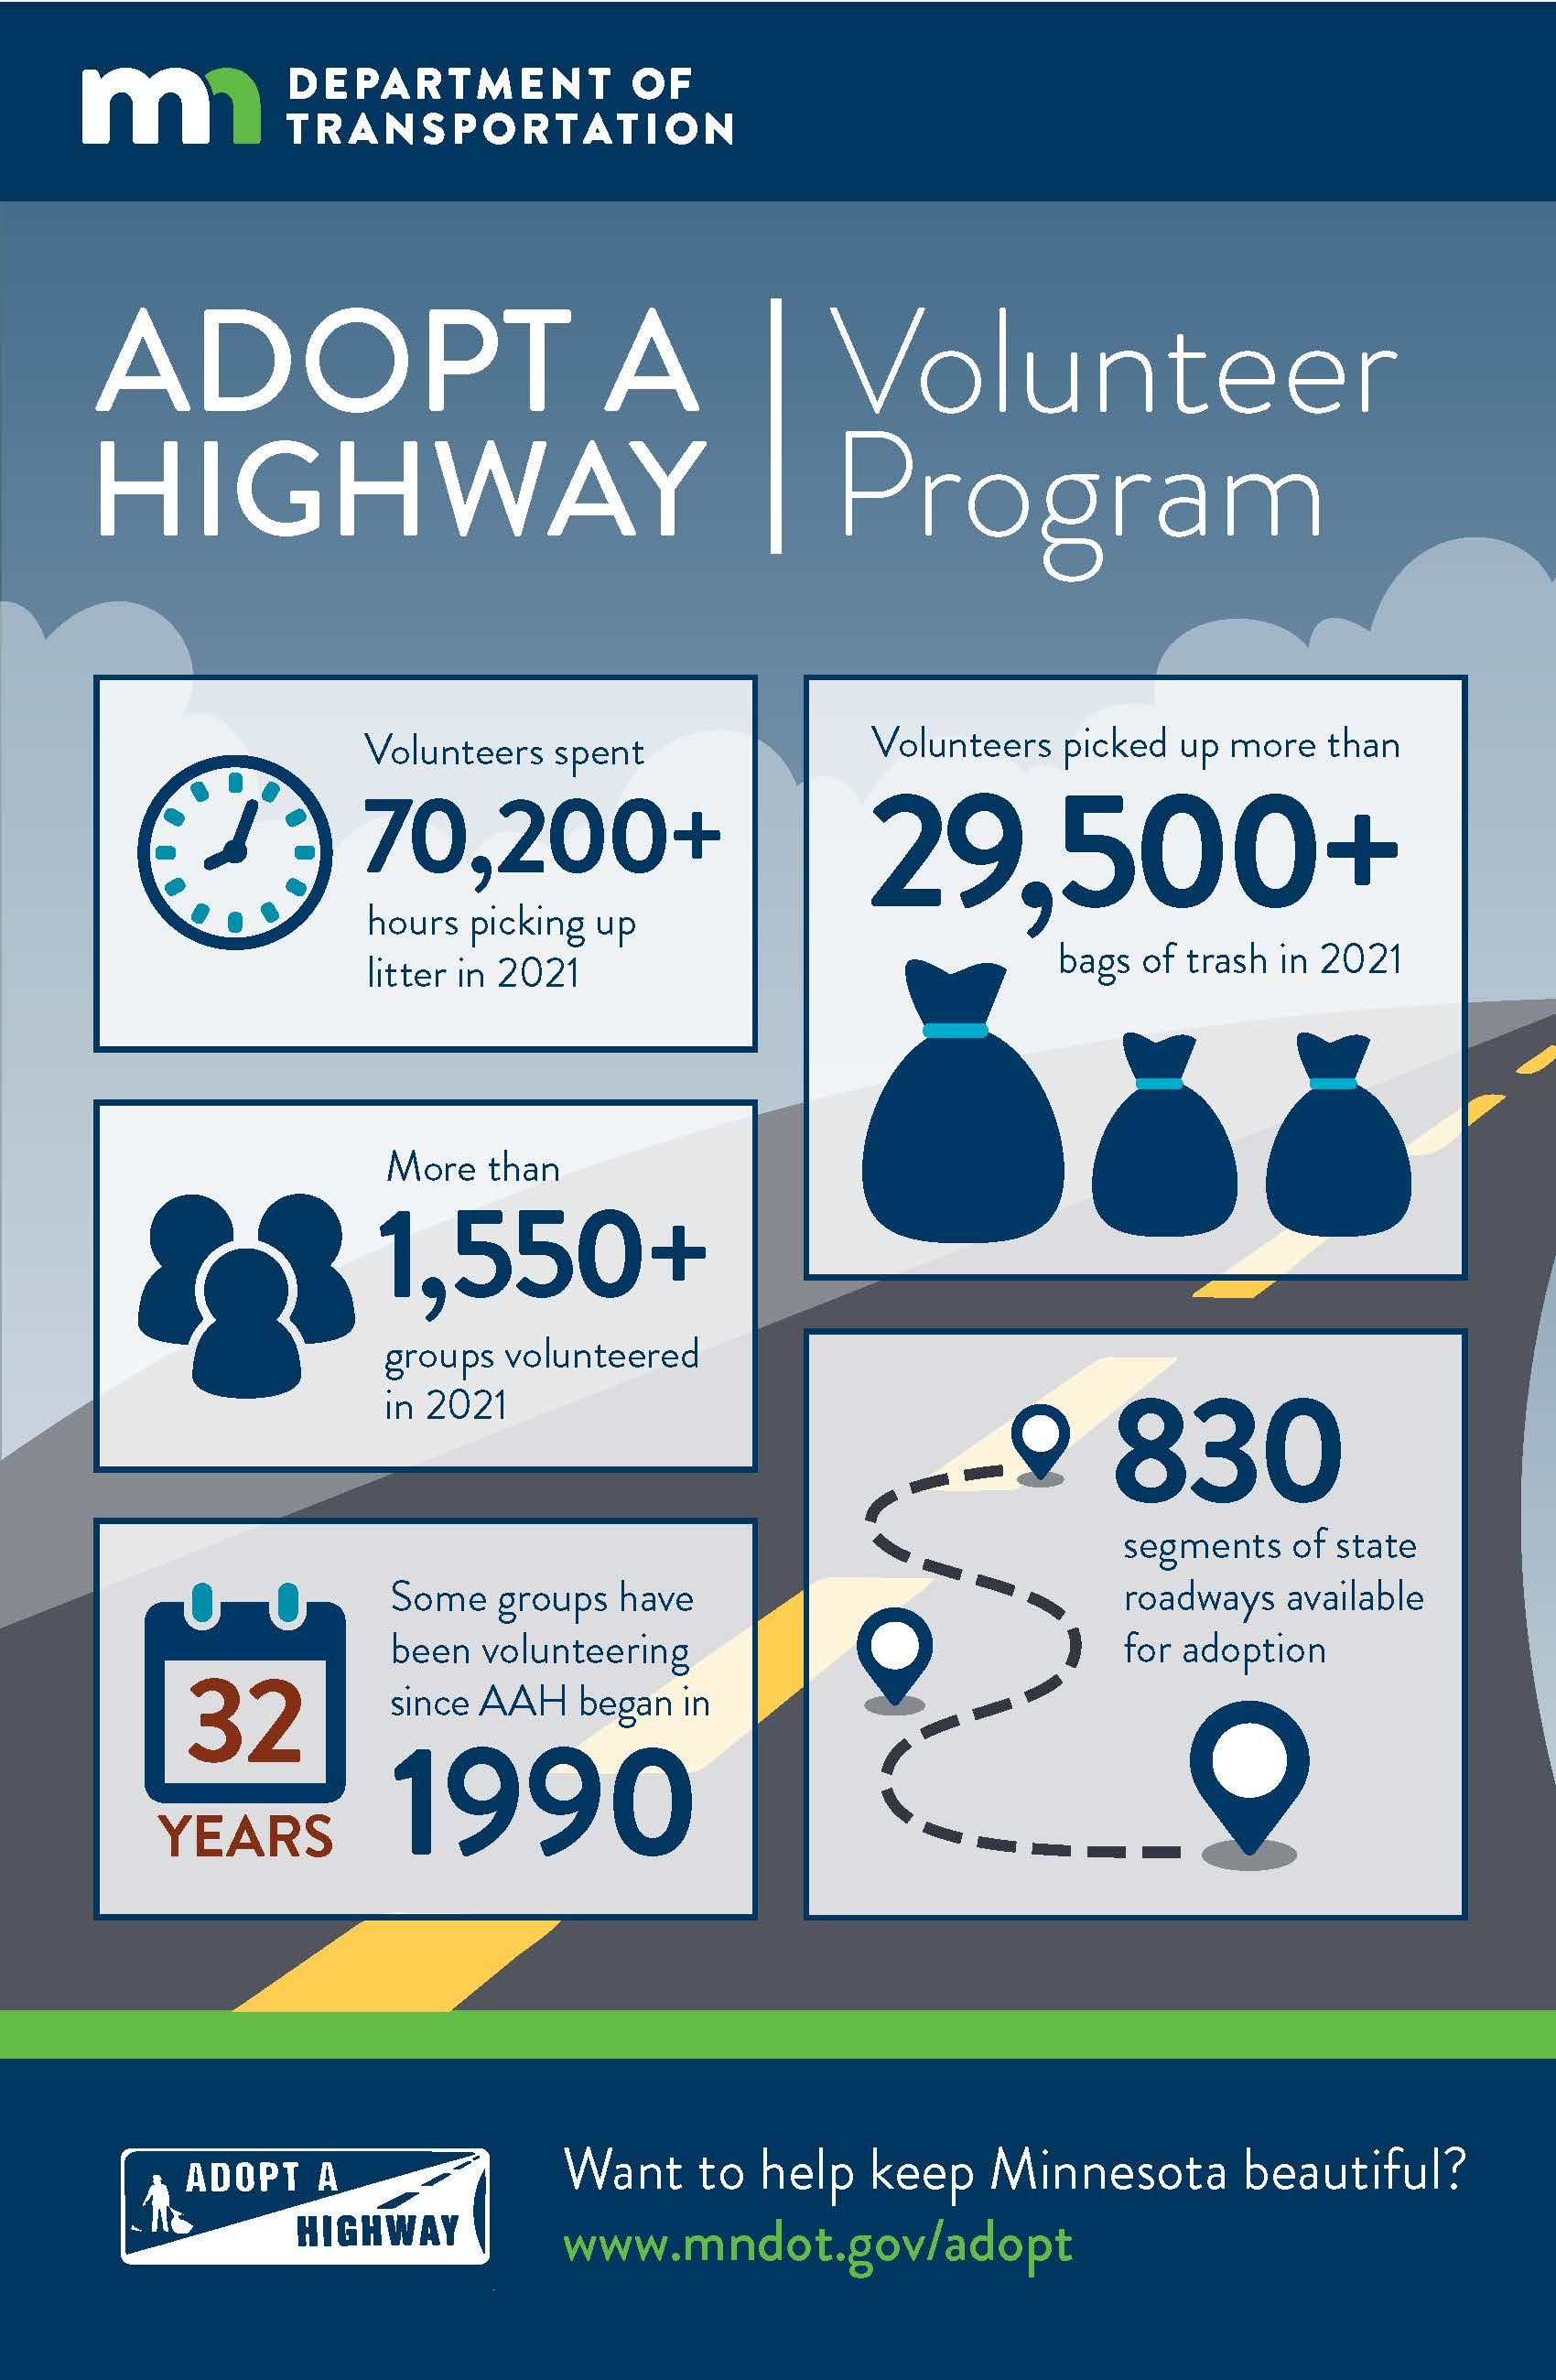 Adopt a Highway Volunteer Program infographic